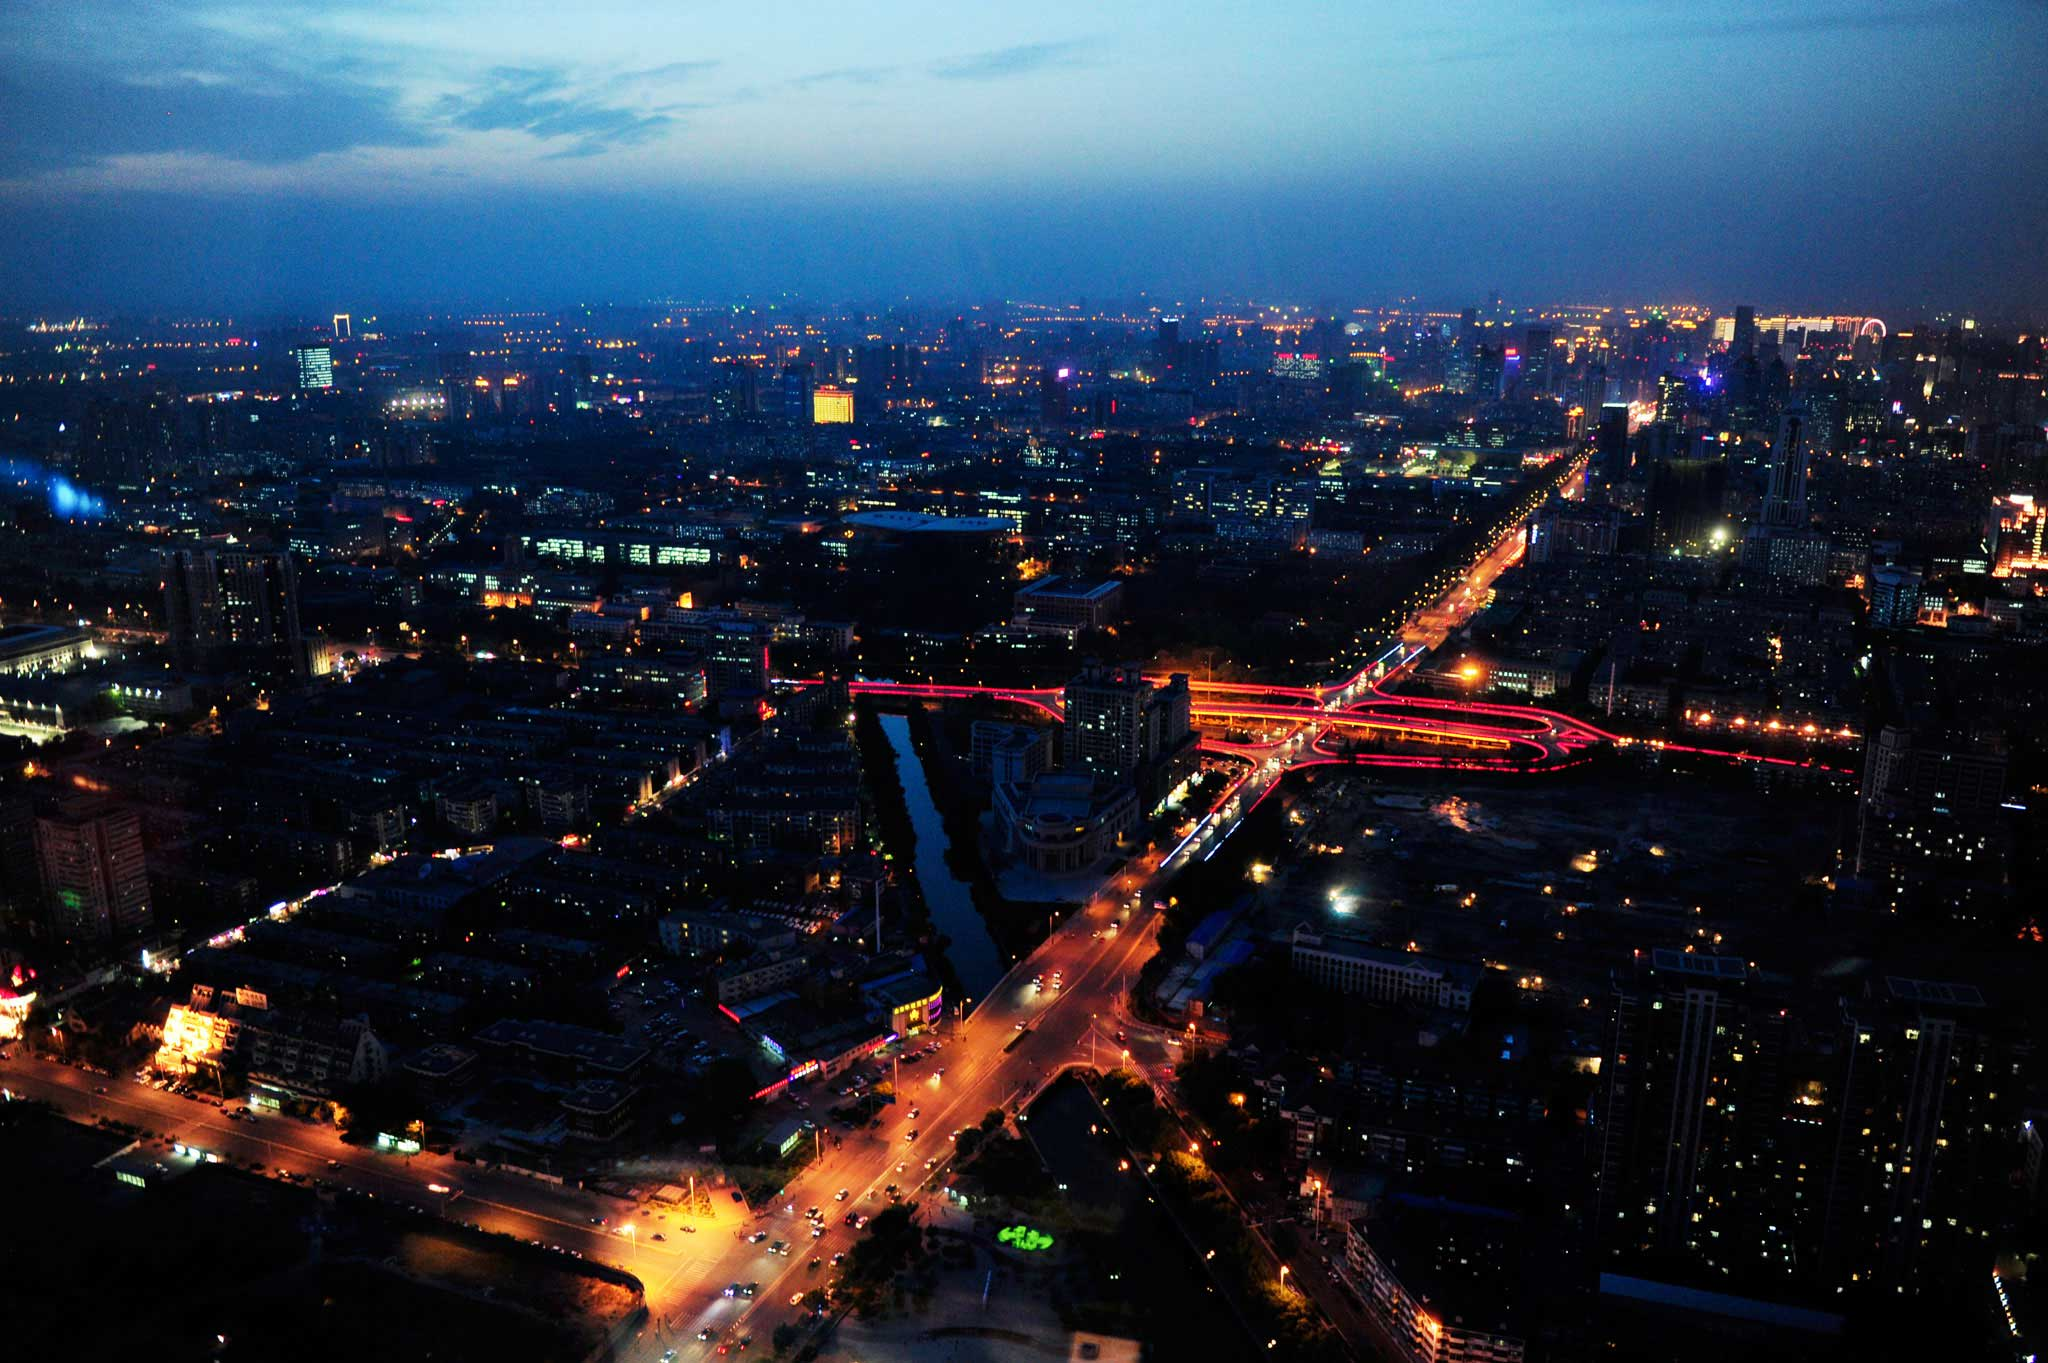 Tianjin is bigger than London, Rio or New York